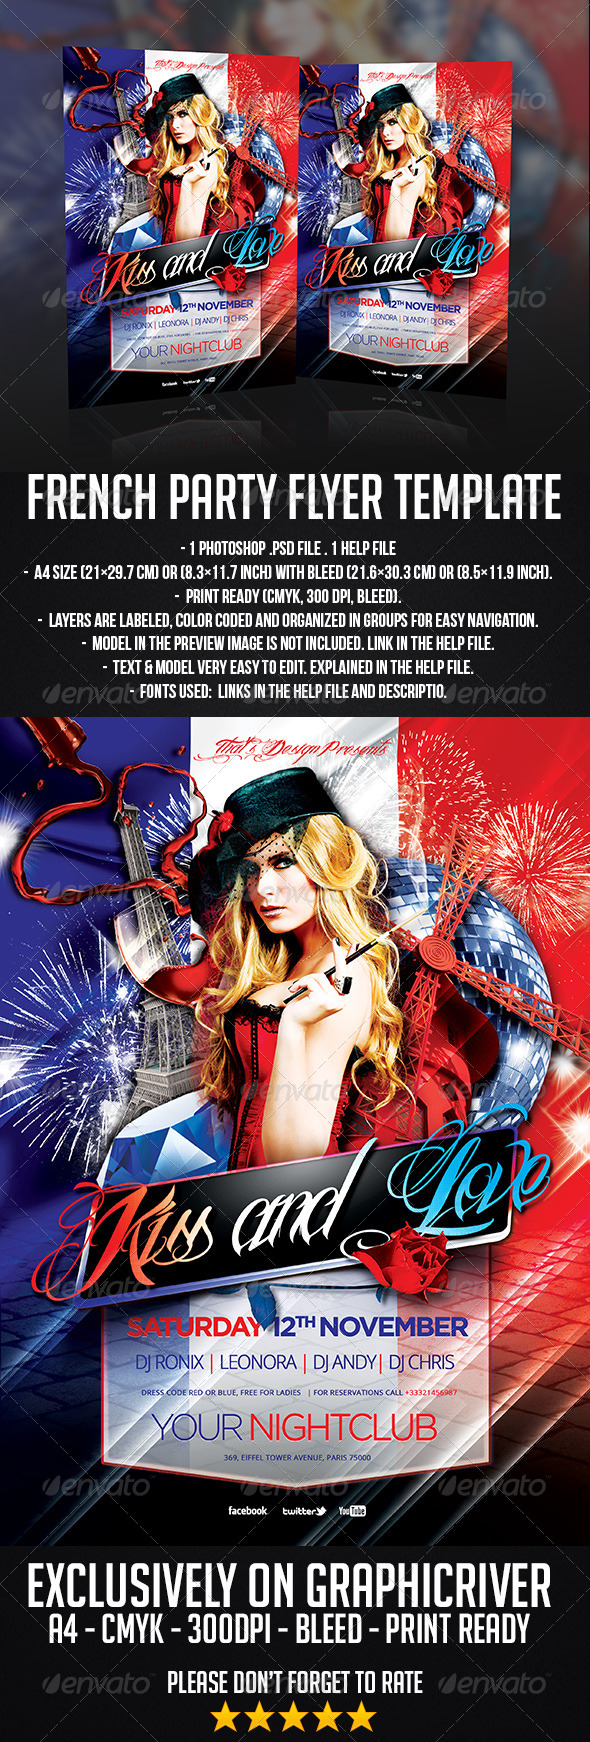 GraphicRiver French Party Flyer Template 6636785